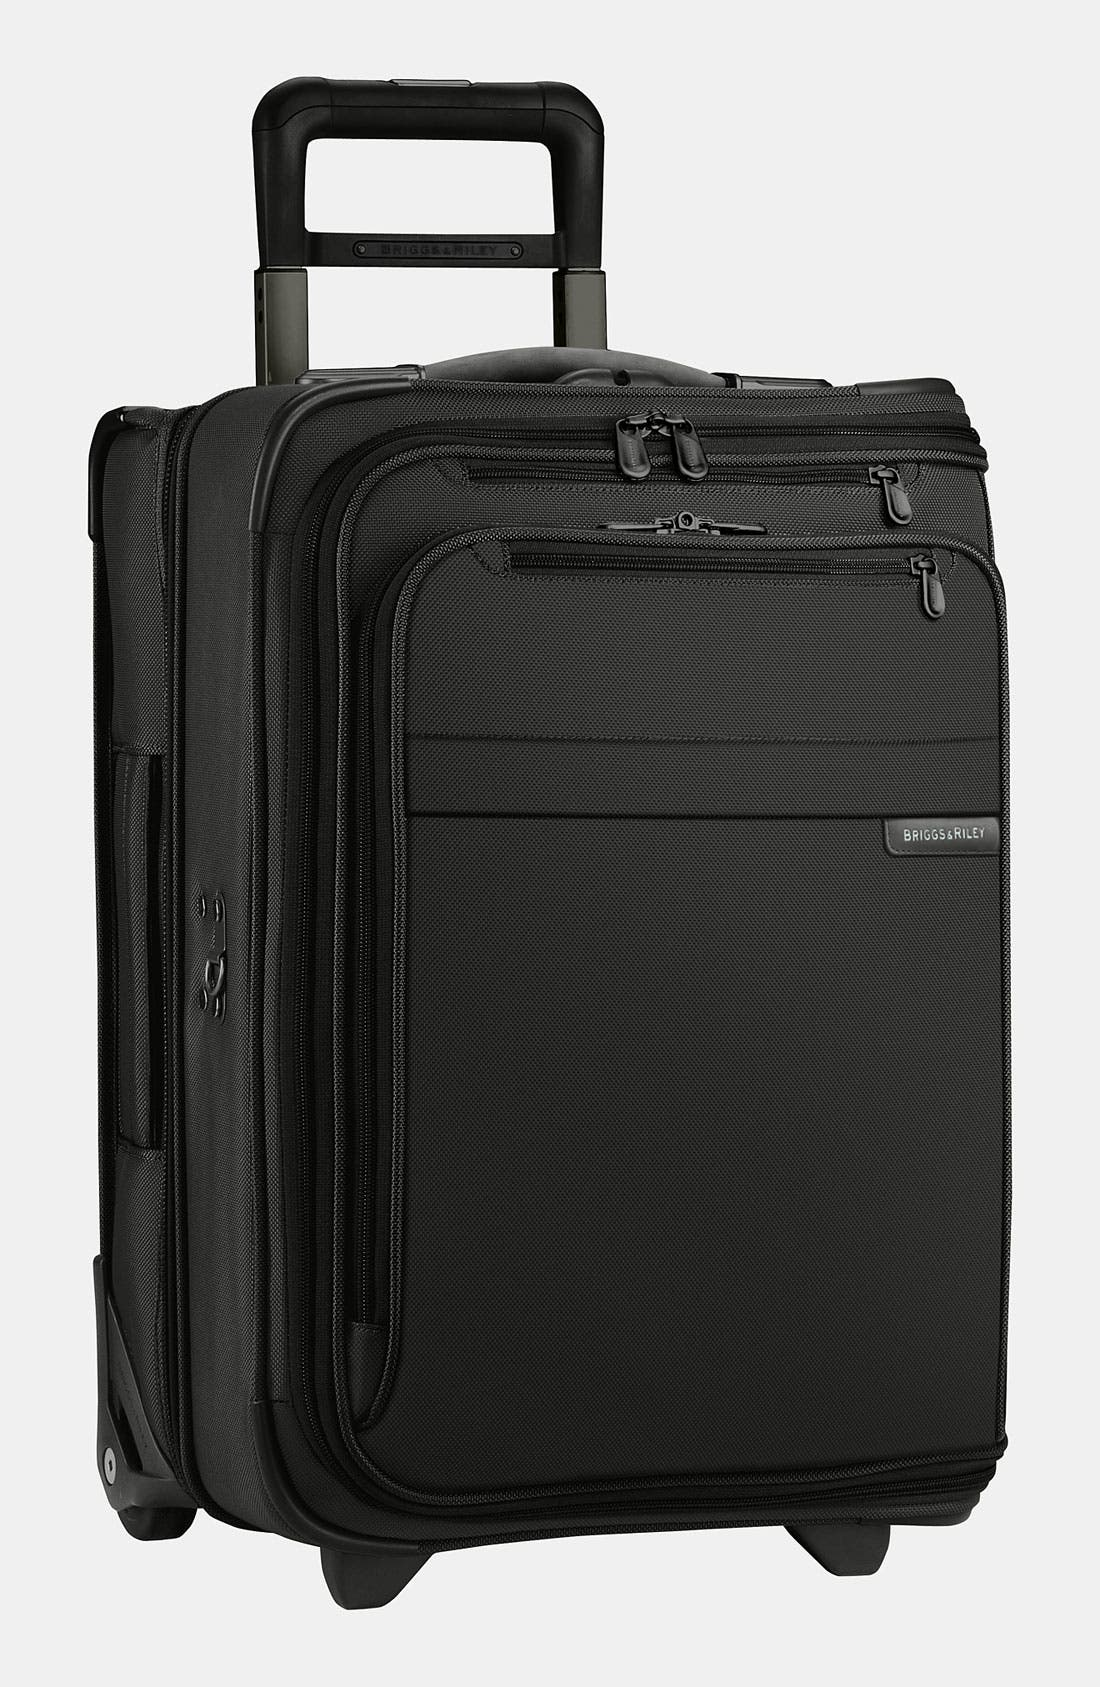 BRIGGS & RILEY Baseline - Domestic Rolling Carry-On Garment Bag